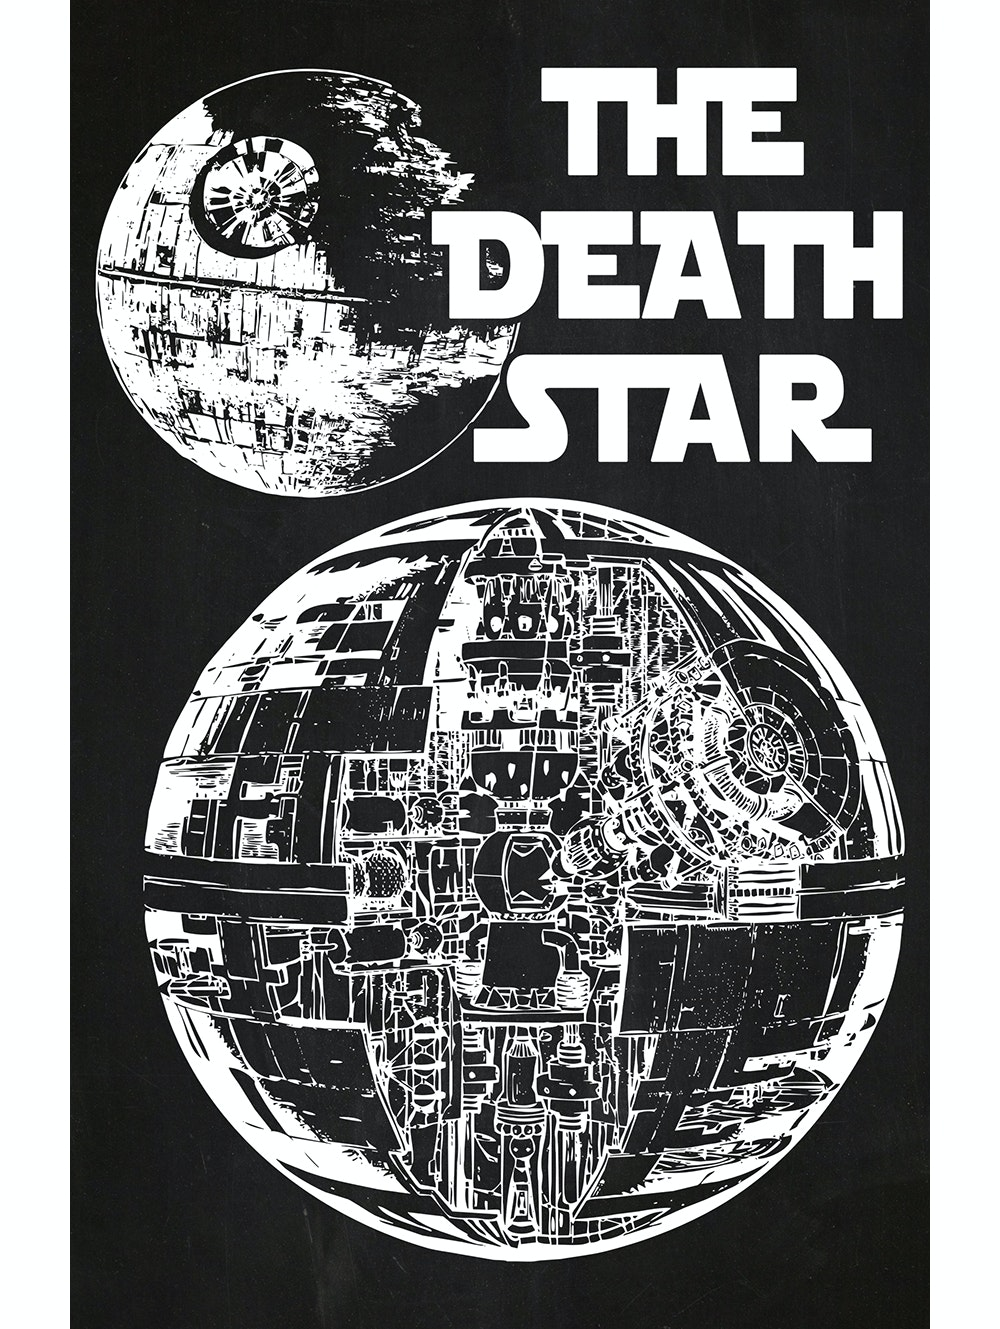 Star Wars - THE Death Star